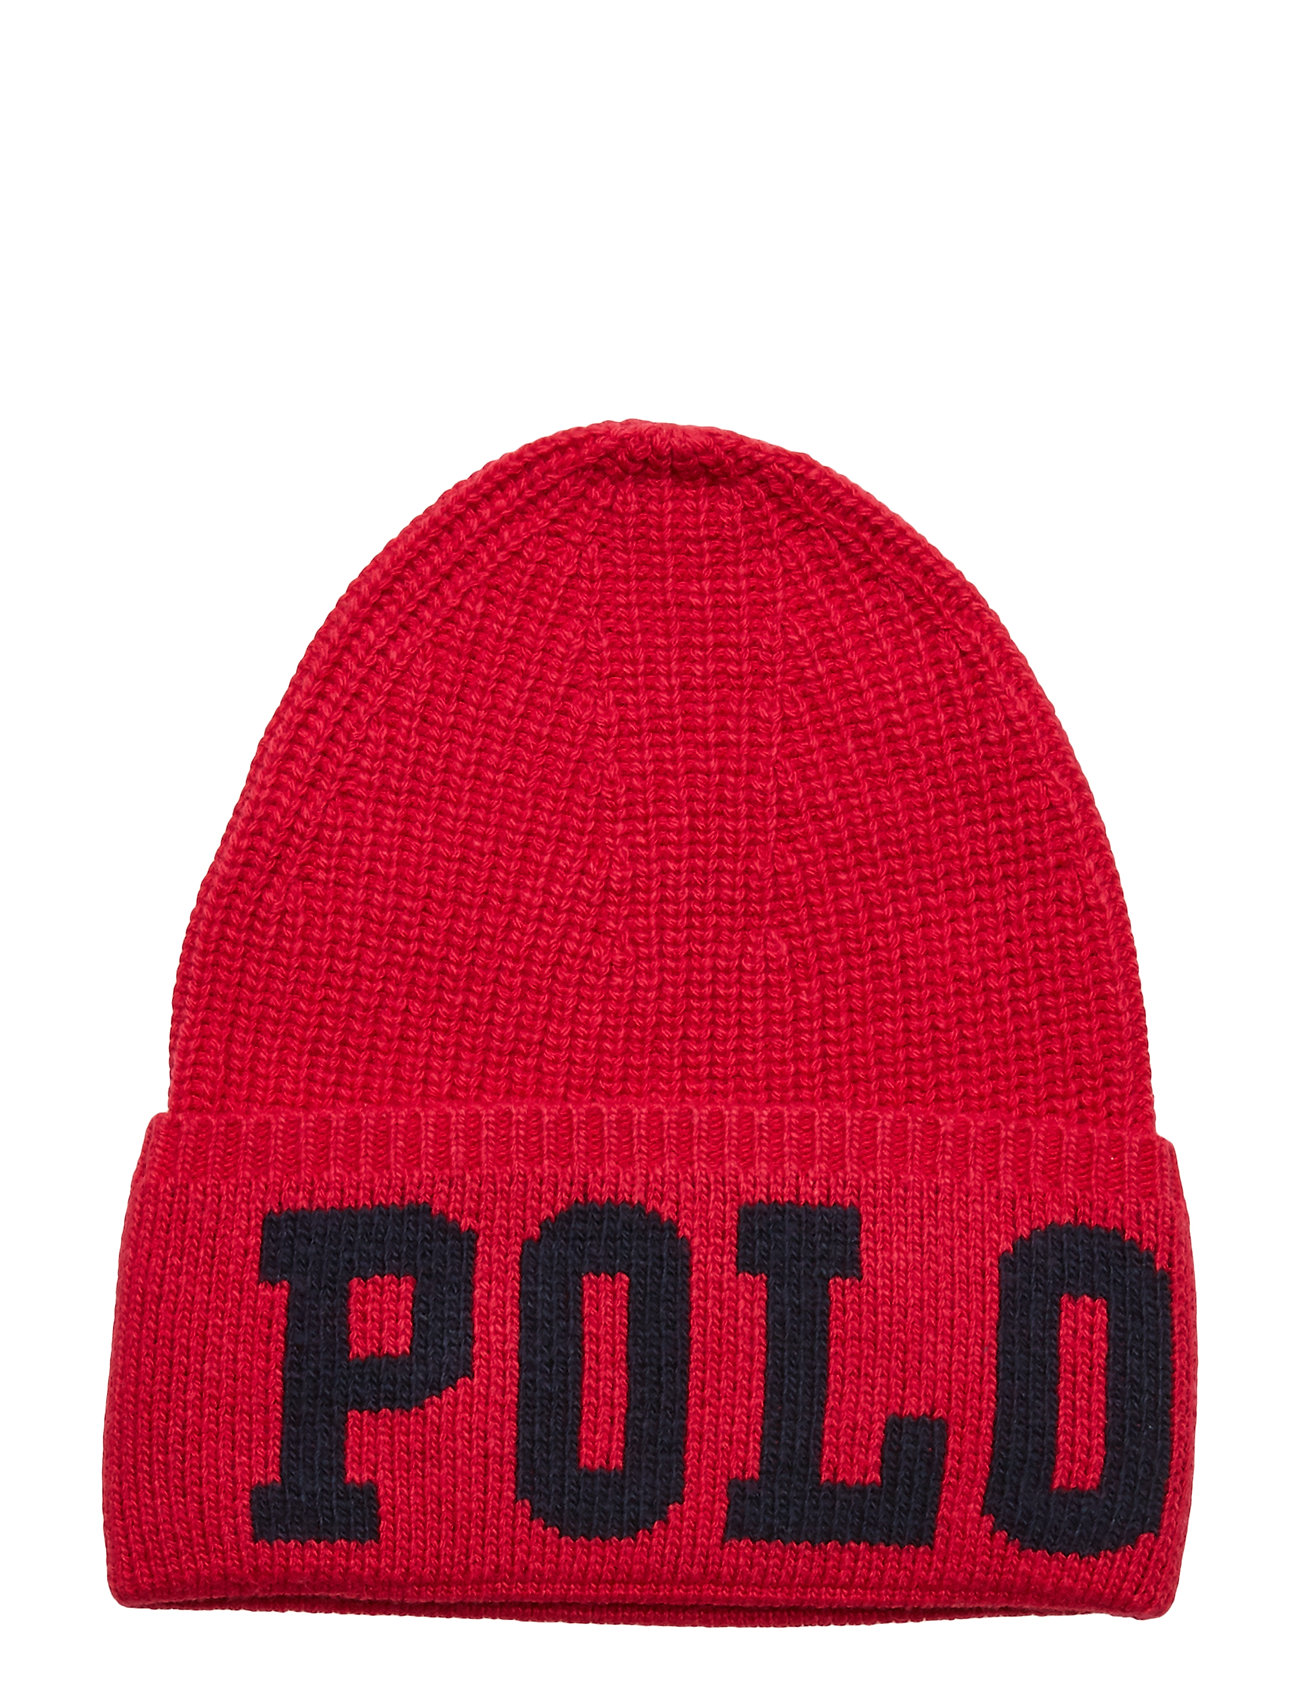 Ralph Lauren Kids POLO HAT-APPAREL ACCESSORIES-HAT - SPORT PINK